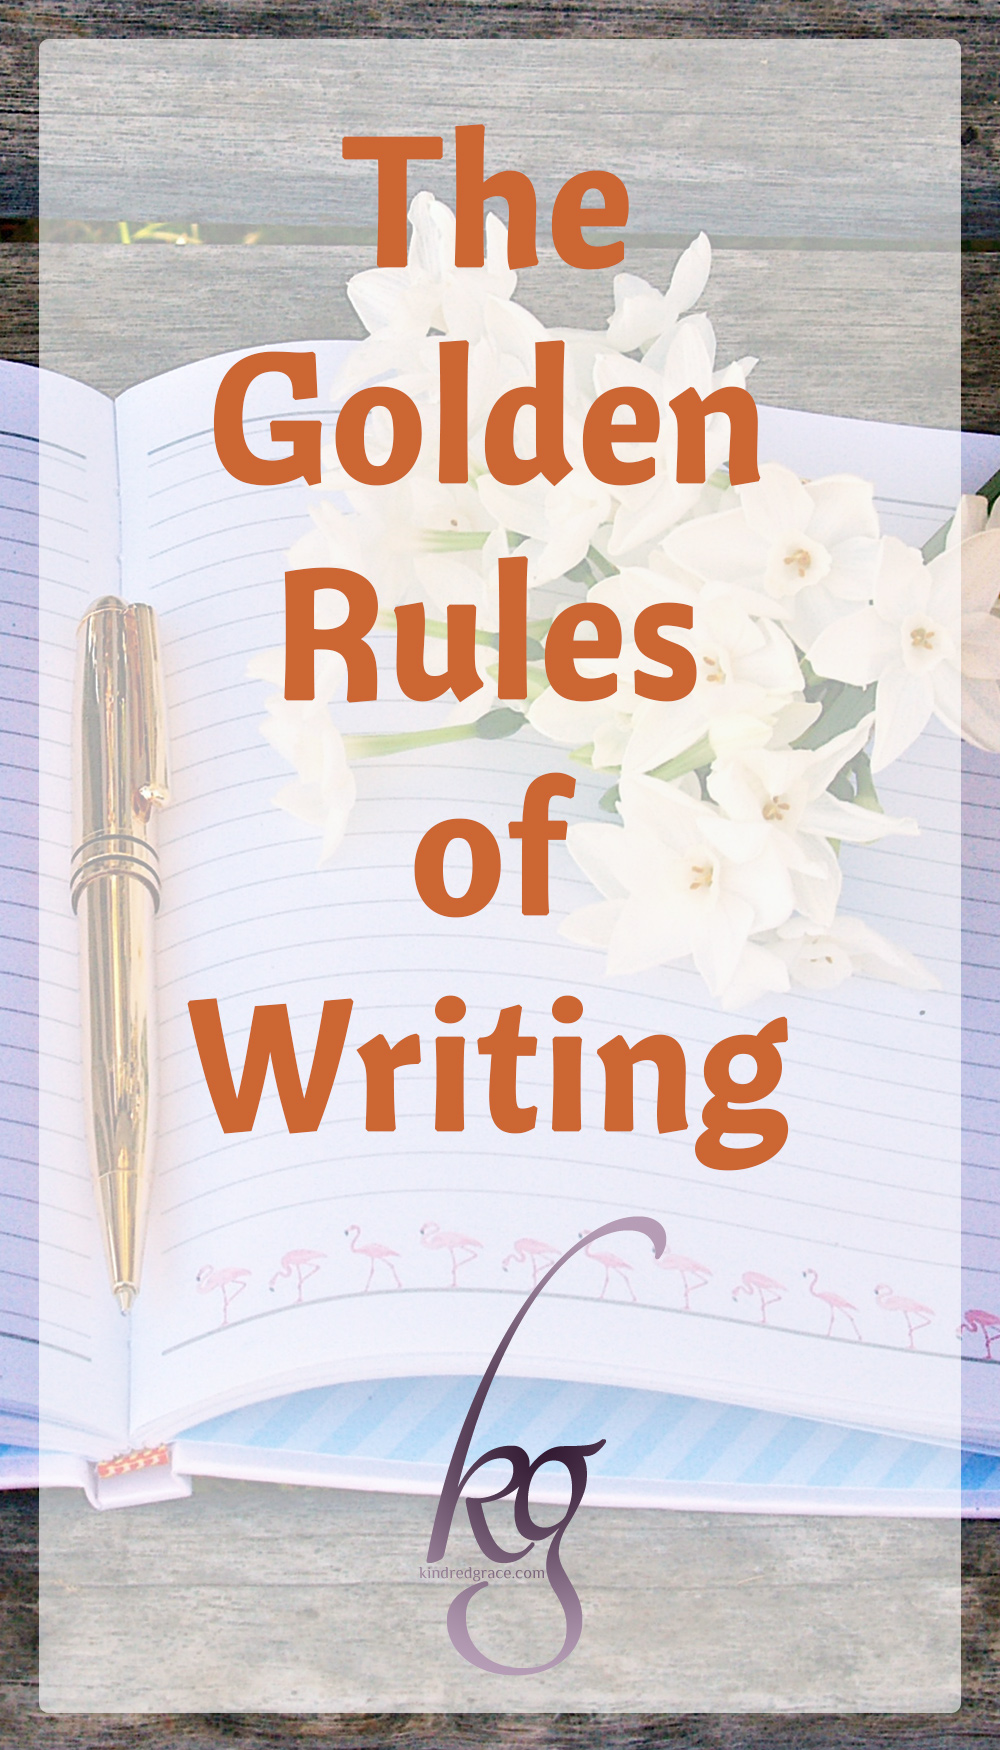 The Golden Rules of Writing via @KindredGrace